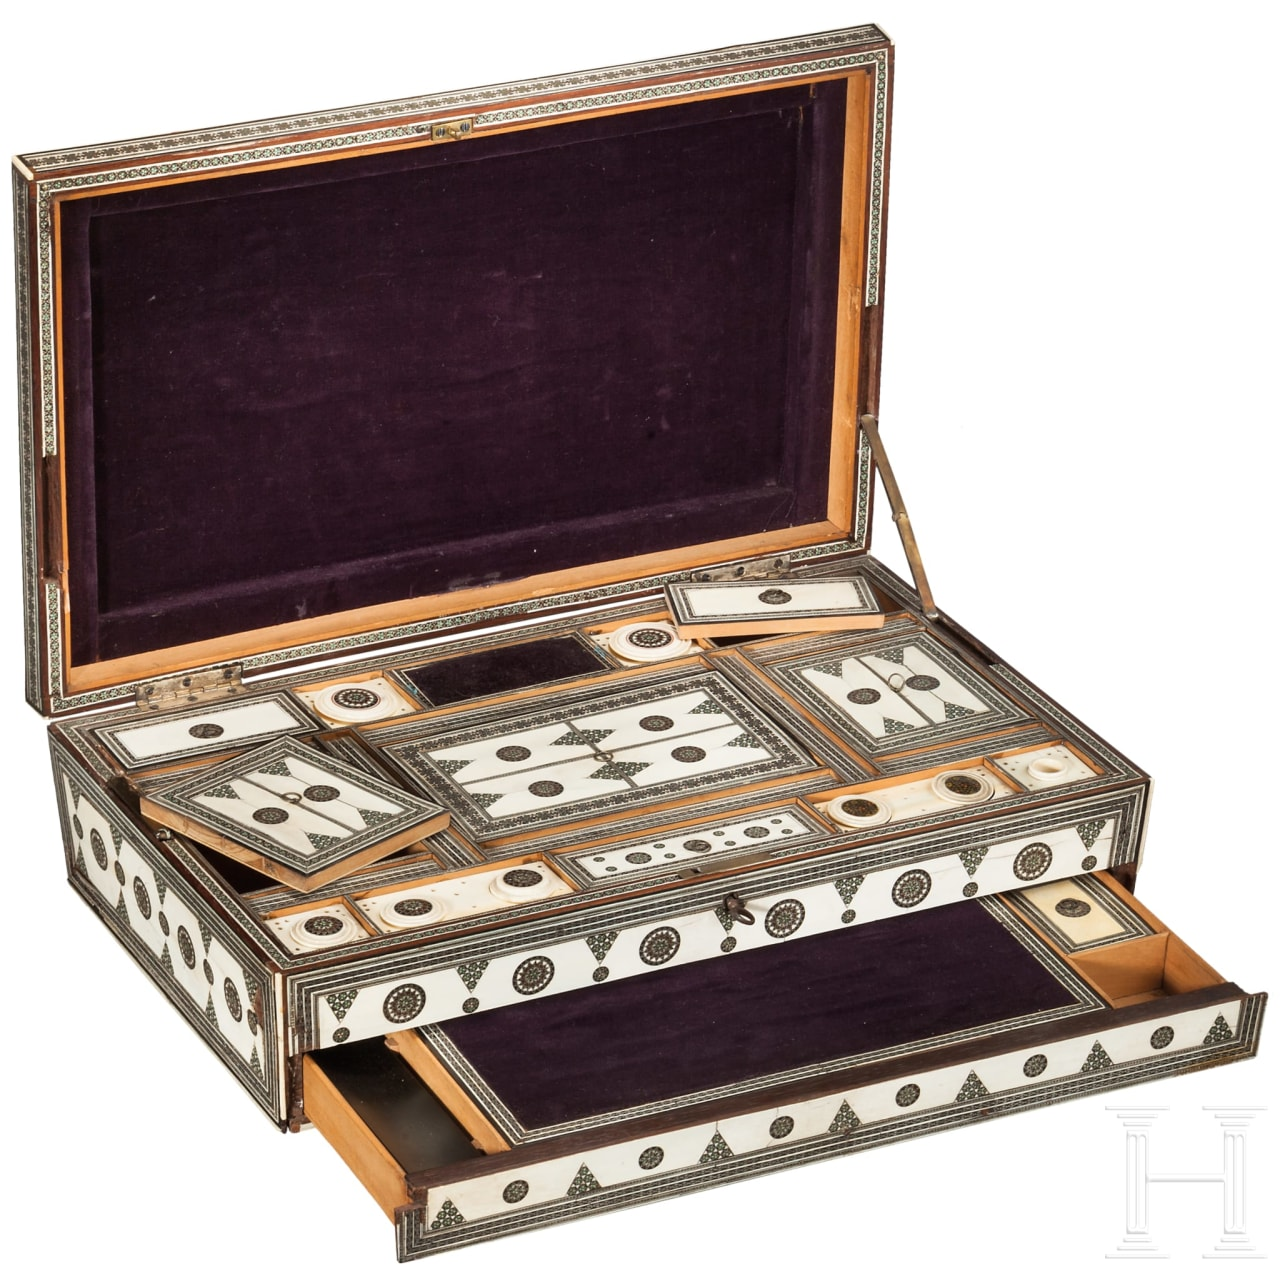 An Indian ivory mounted sewing casket, ca. 1880